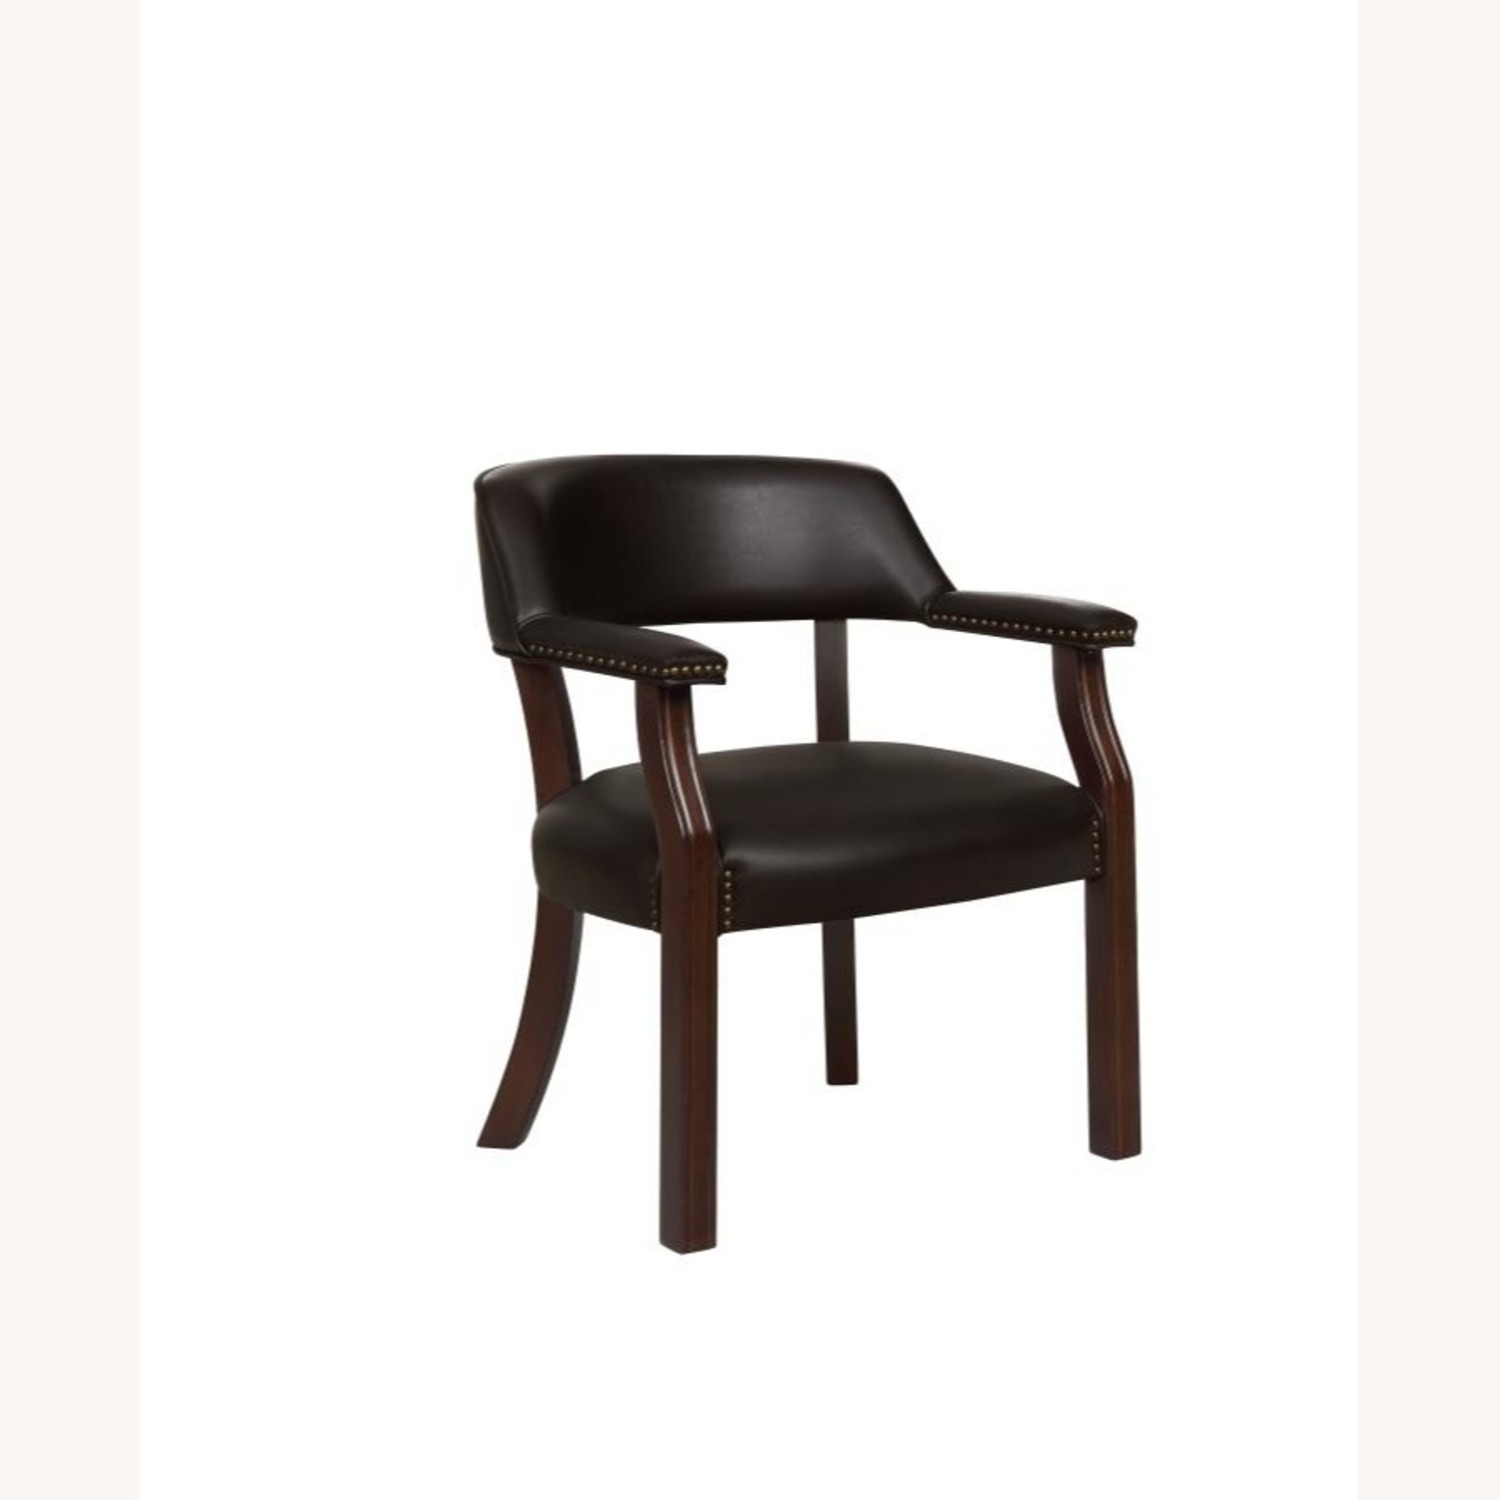 Guest Chair In Brown Leatherette - image-0